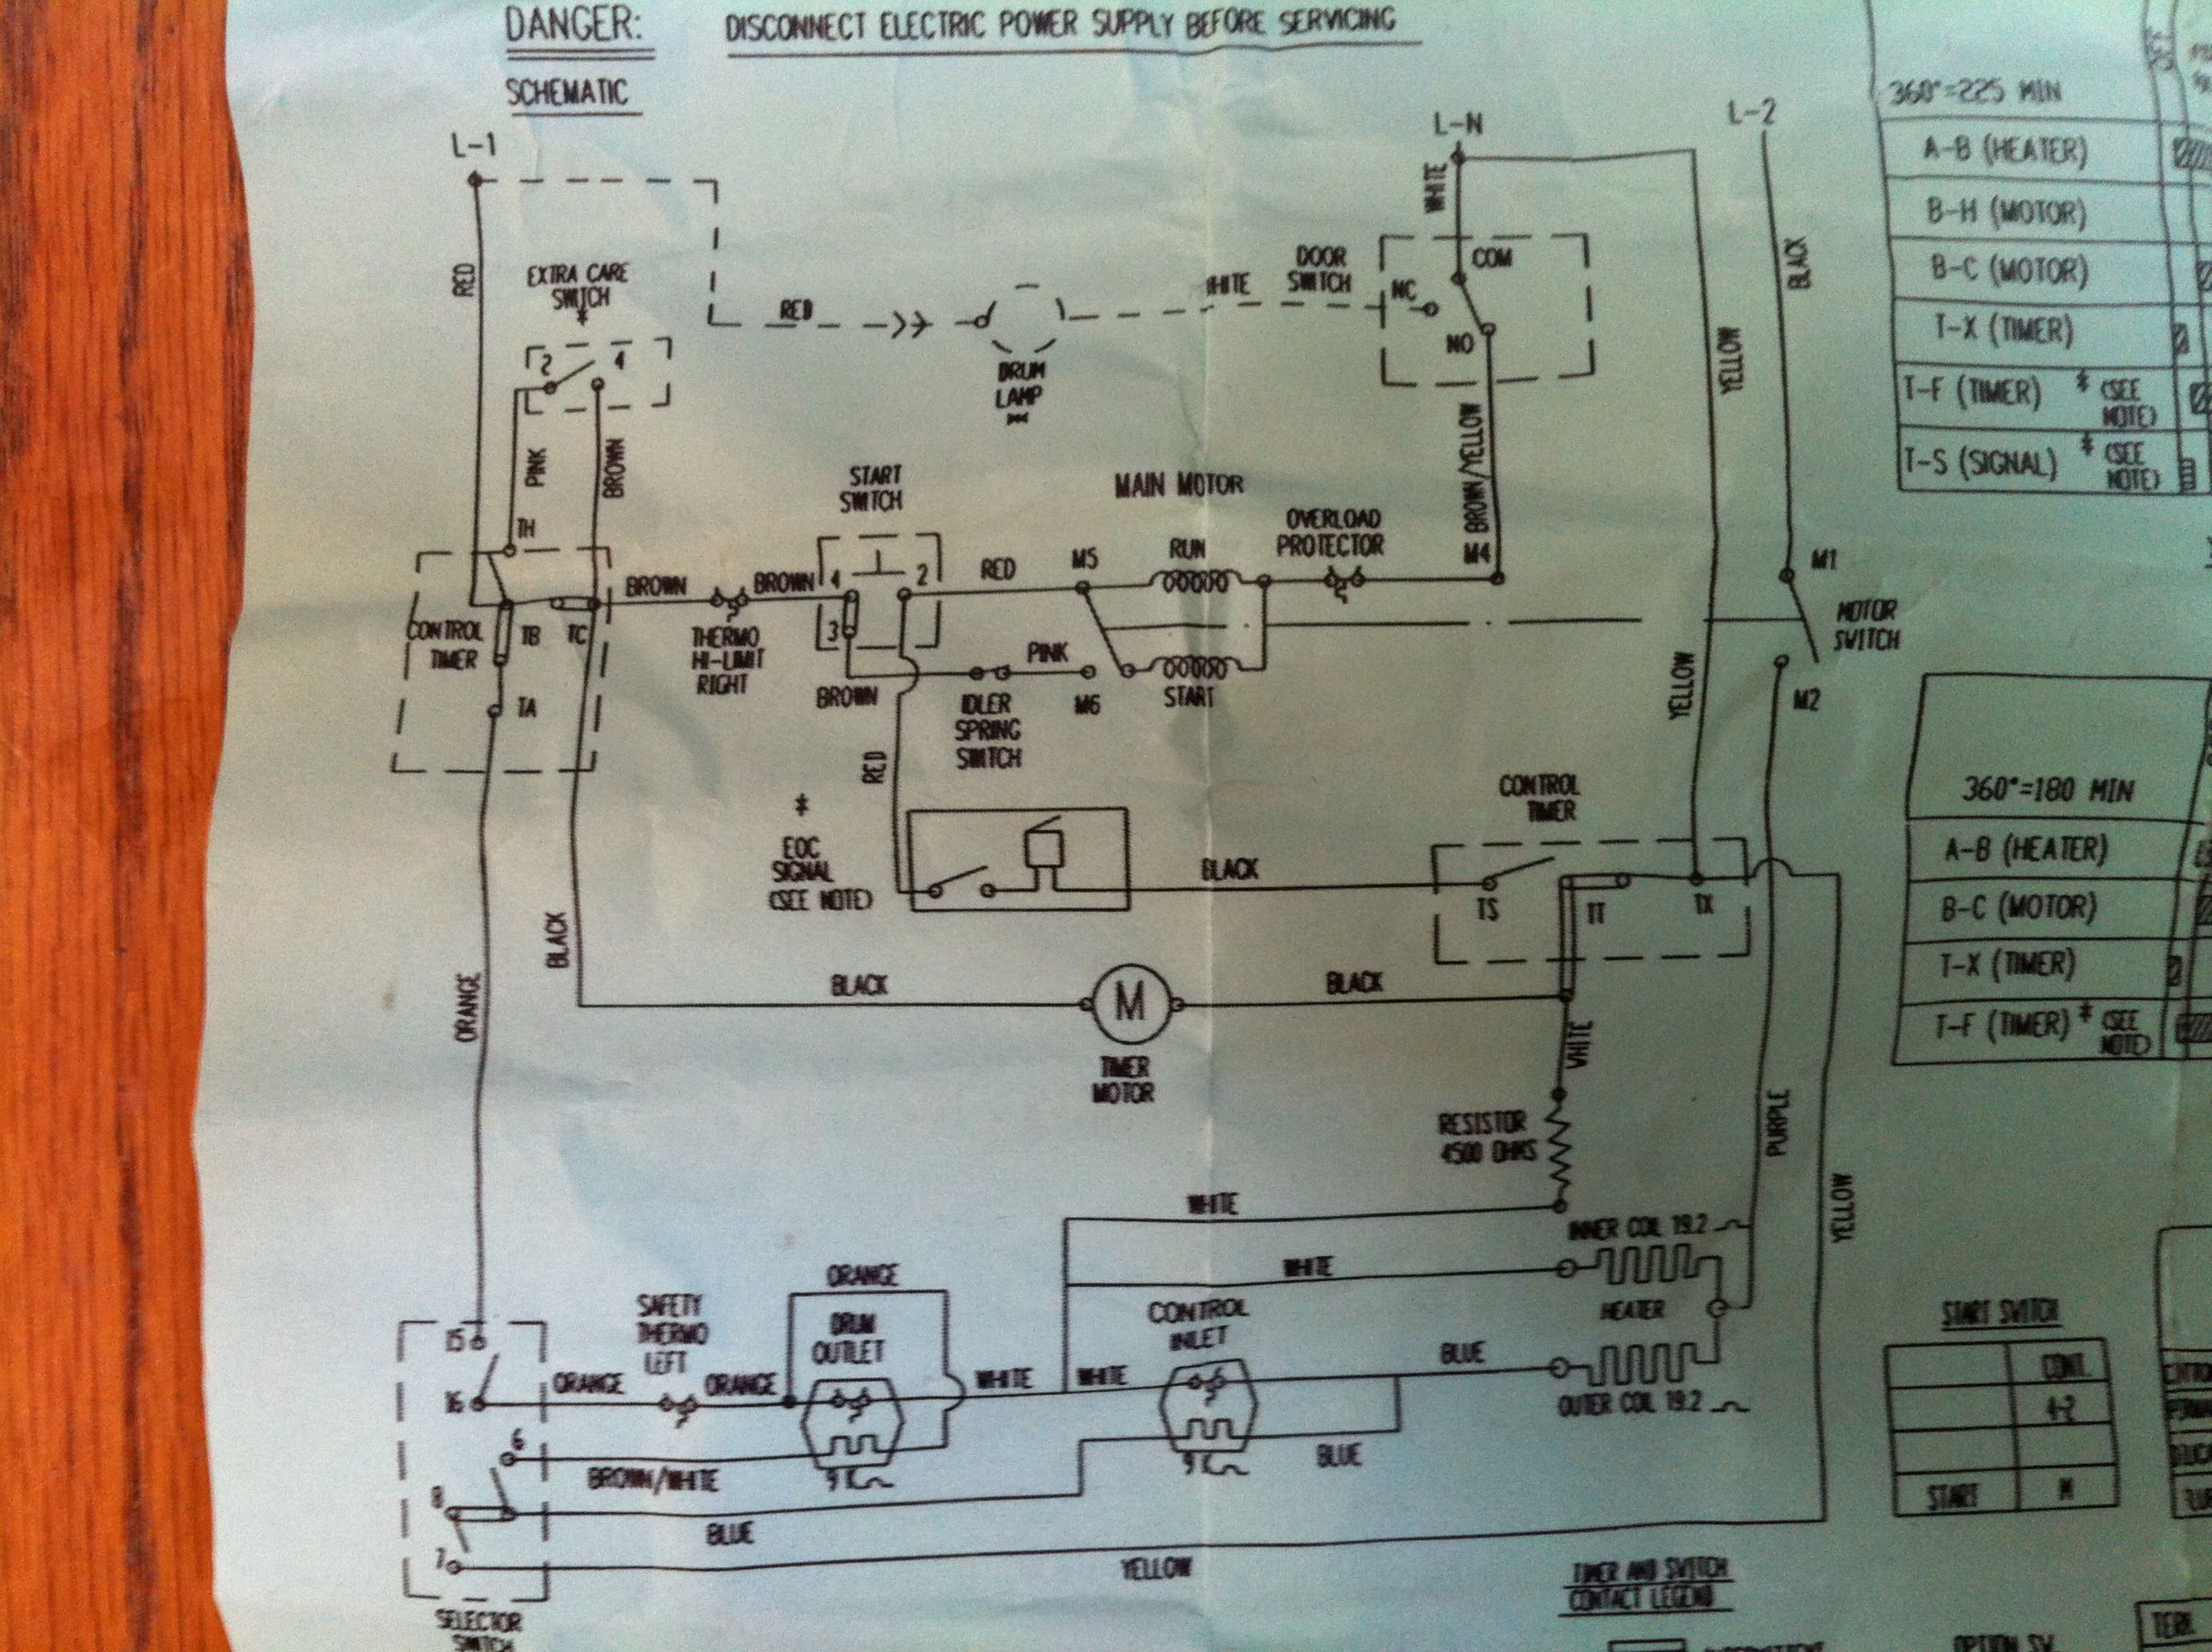 ge stove wiring diagram ge electric stove wiring diagram images ge wireing diagrams electric dryers blow drying 220 volt electric dryer wiring diagram by sanja